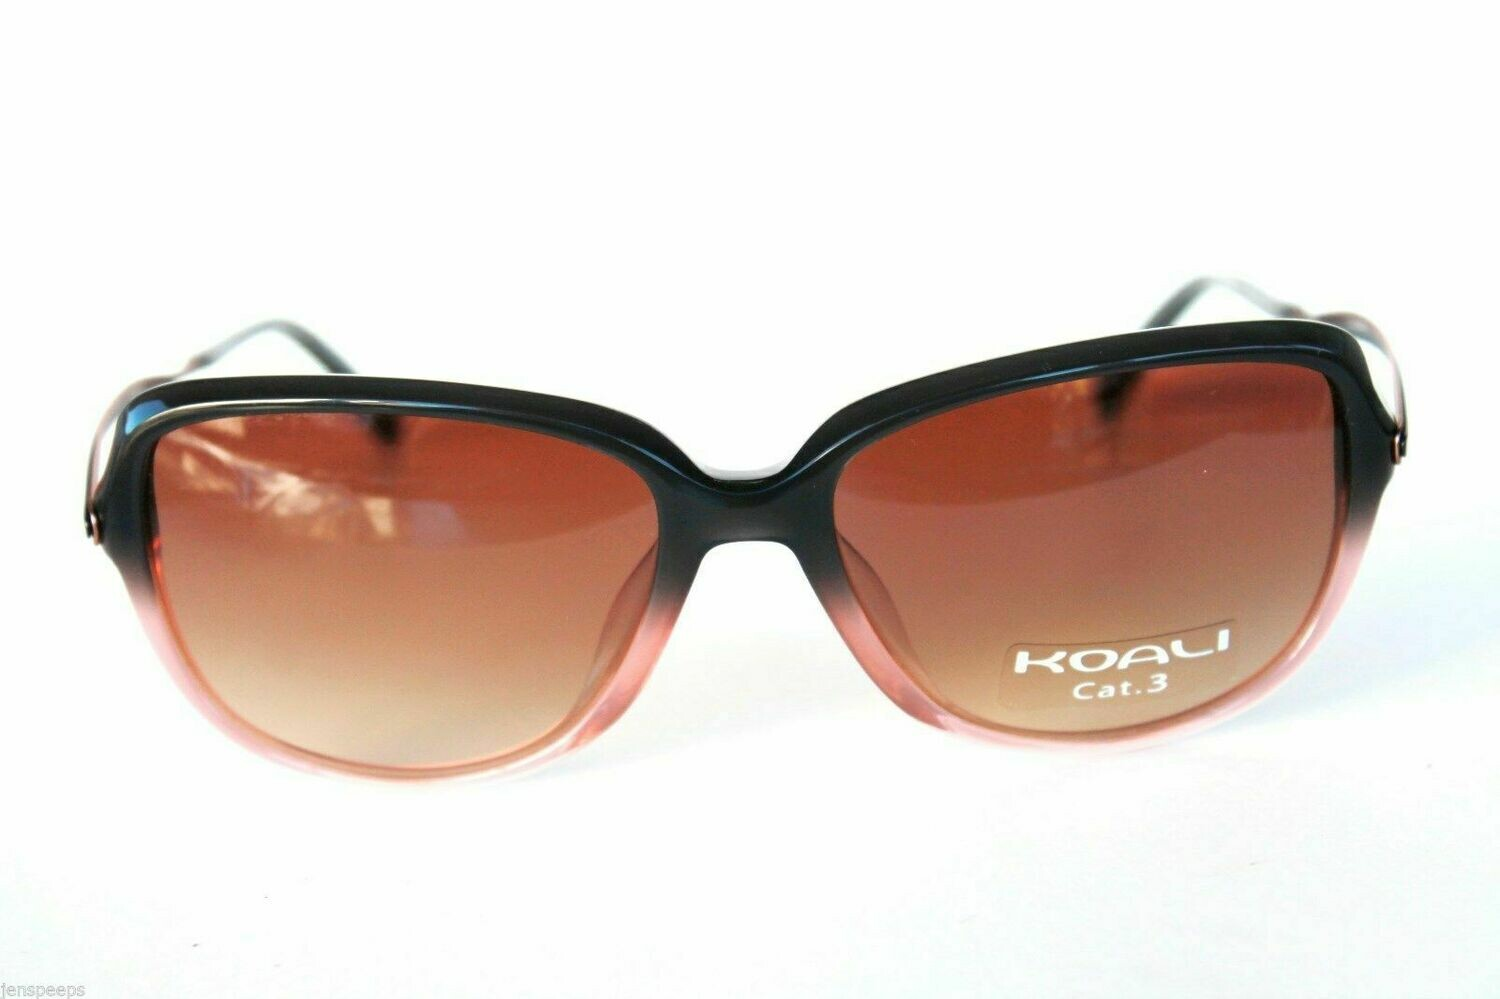 New Koali Sunglasses 7177K Prescription Friendly sunwear Cat 3